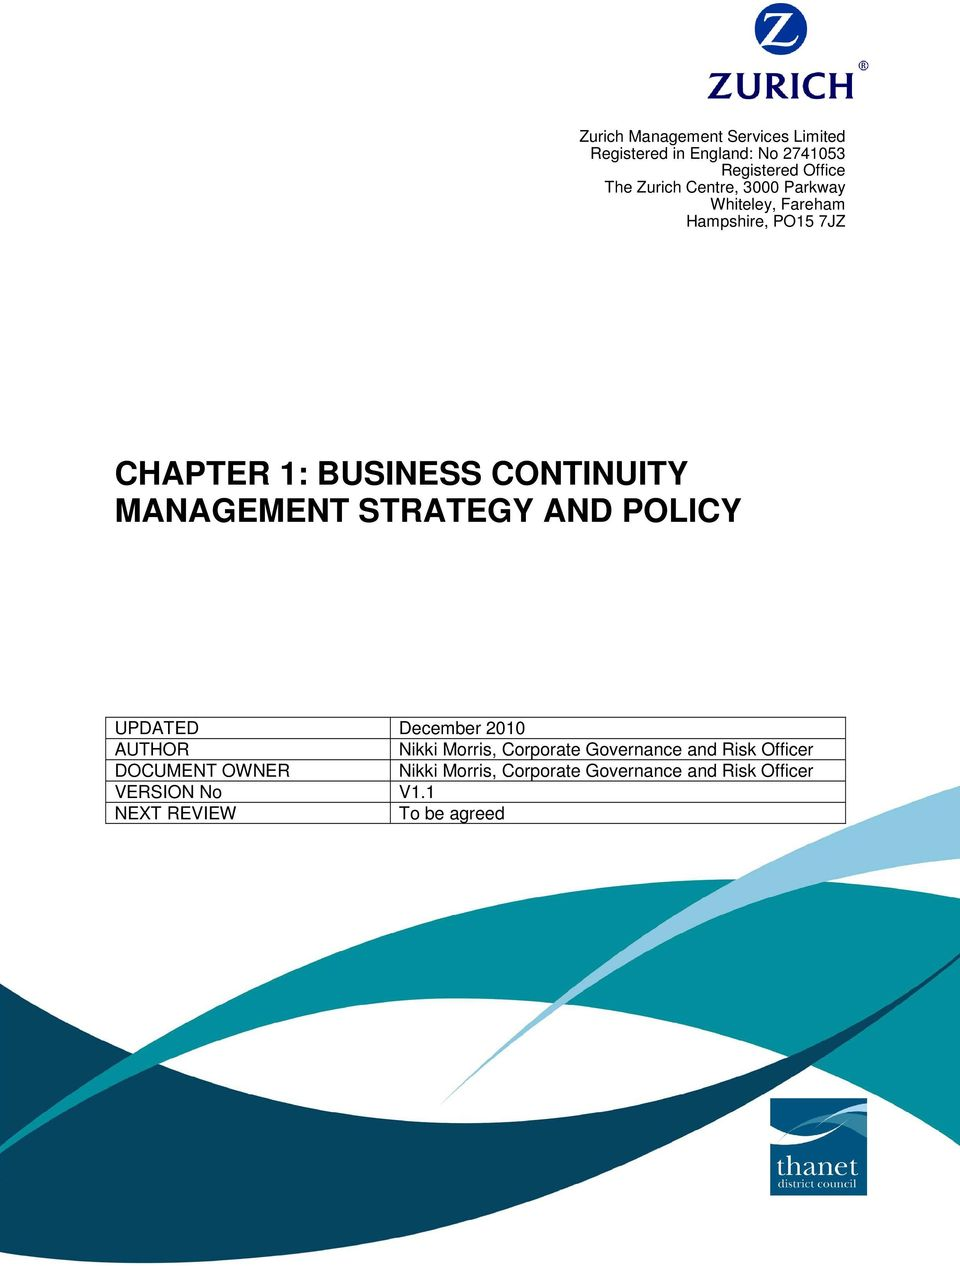 STRATEGY AND POLICY UPDATED December 2010 AUTHOR Nikki Morris, Corporate Governance and Risk Officer